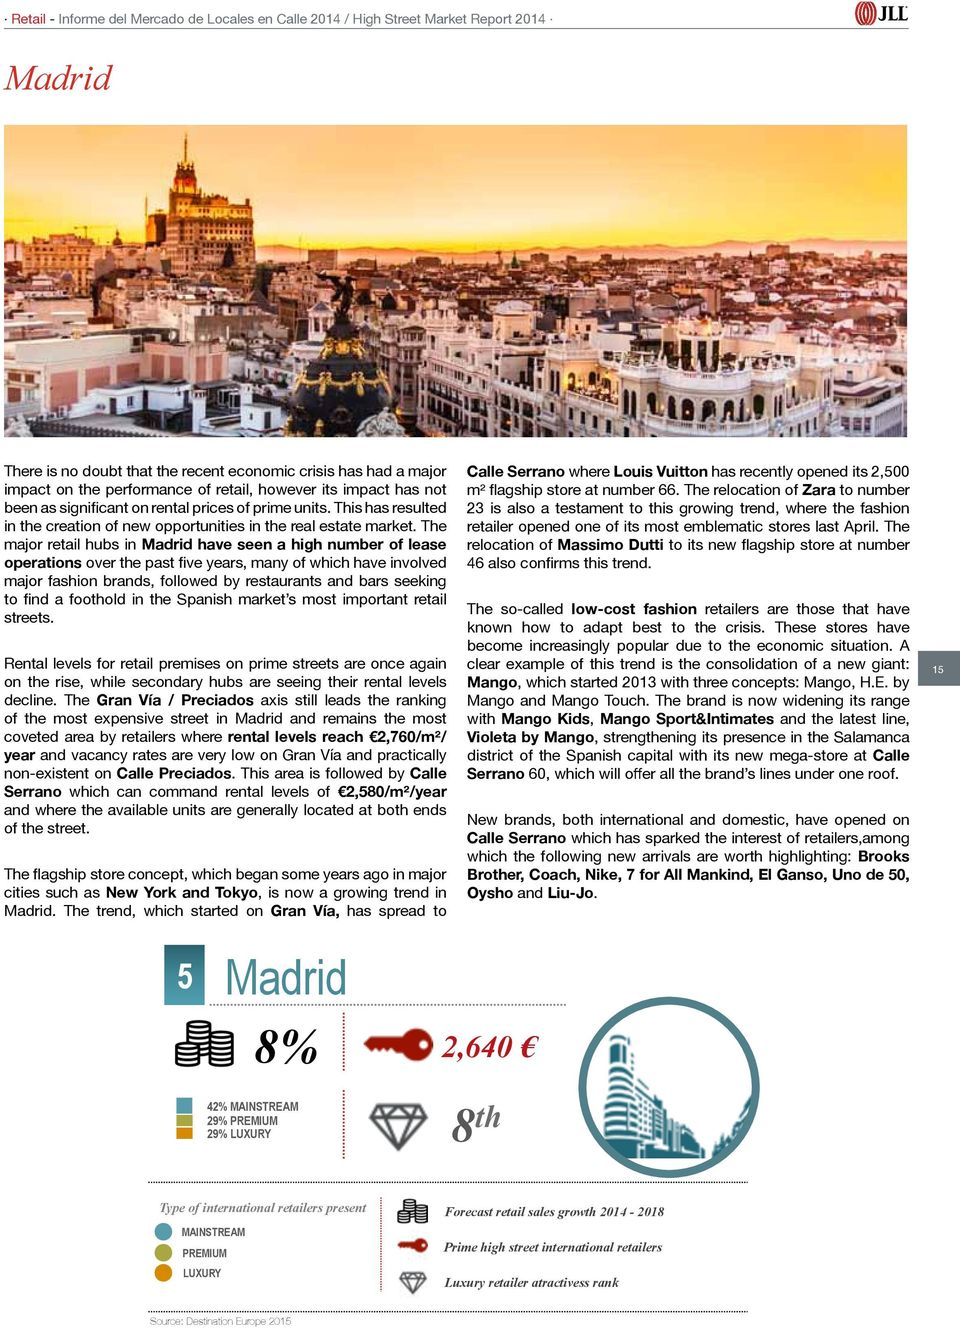 The major retail hubs in Madrid have seen a high number of lease operations over the past five years, many of which have involved major fashion brands, followed by restaurants and bars seeking to